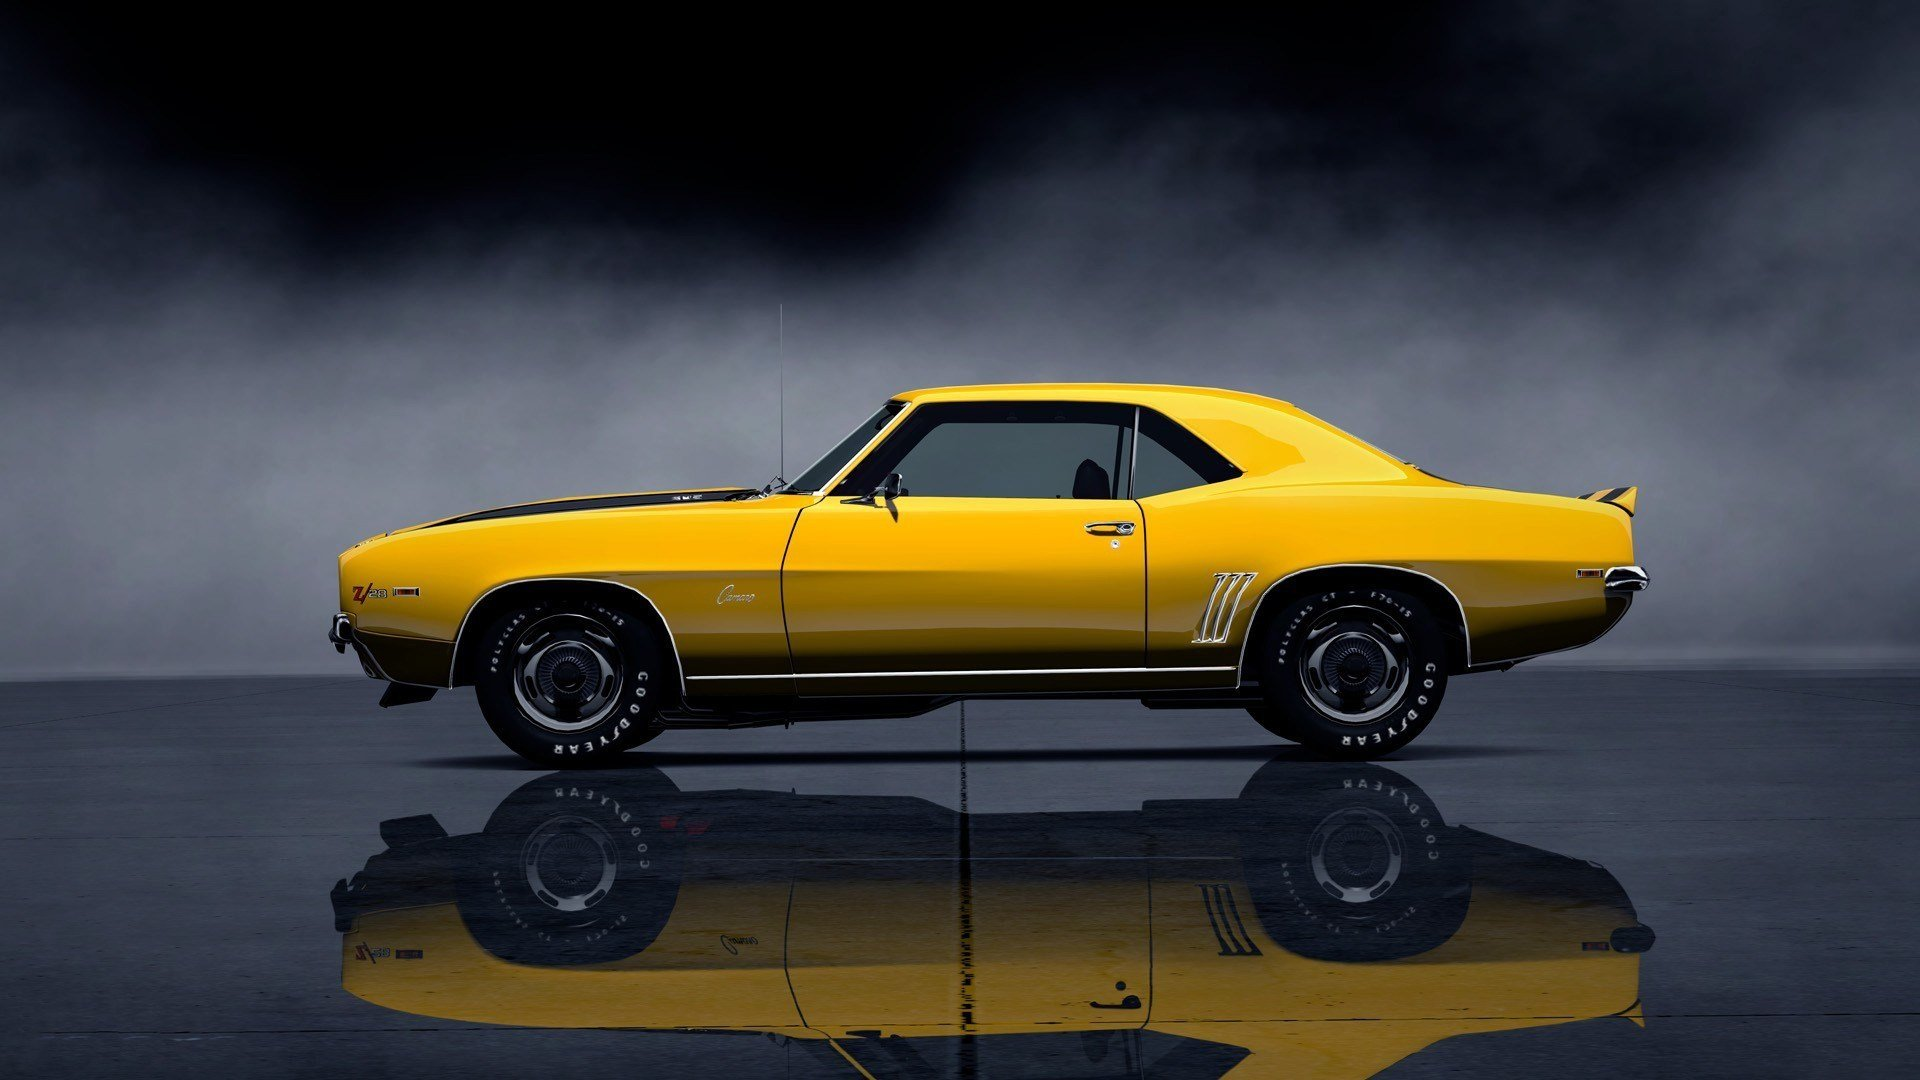 New Chevrolet Bowtie Wallpaper 67 Images On This Month